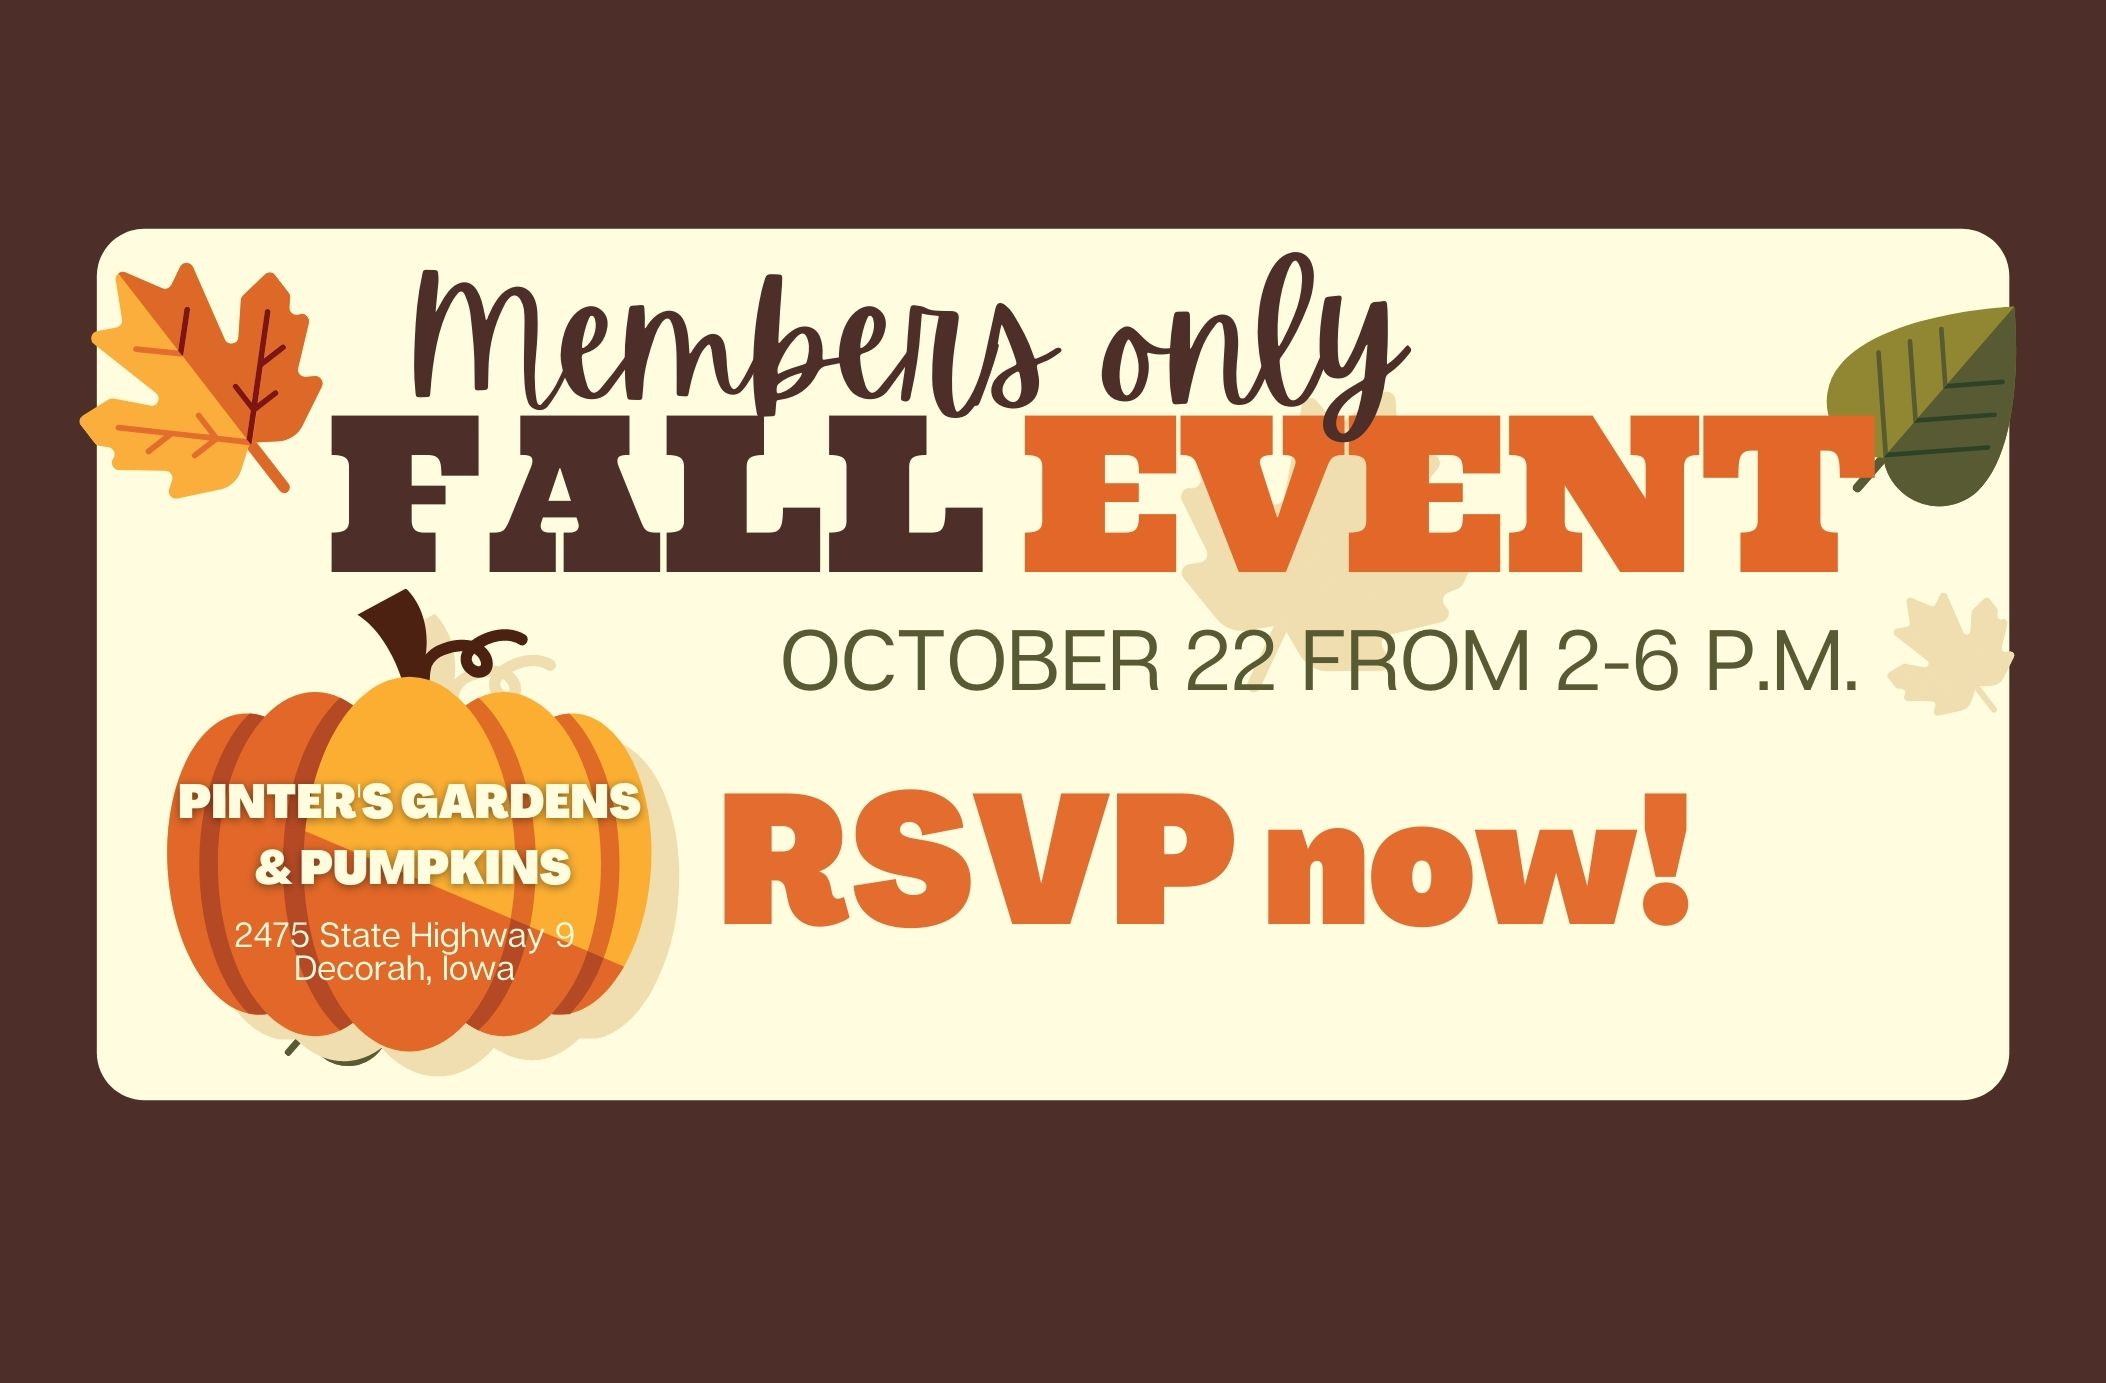 https://mienergy.coop/sites/default/files/revslider/image/Copy%20of%20Fall%20Event%20%287.75%20x%205.396%20in%29%20%283%29.jpg